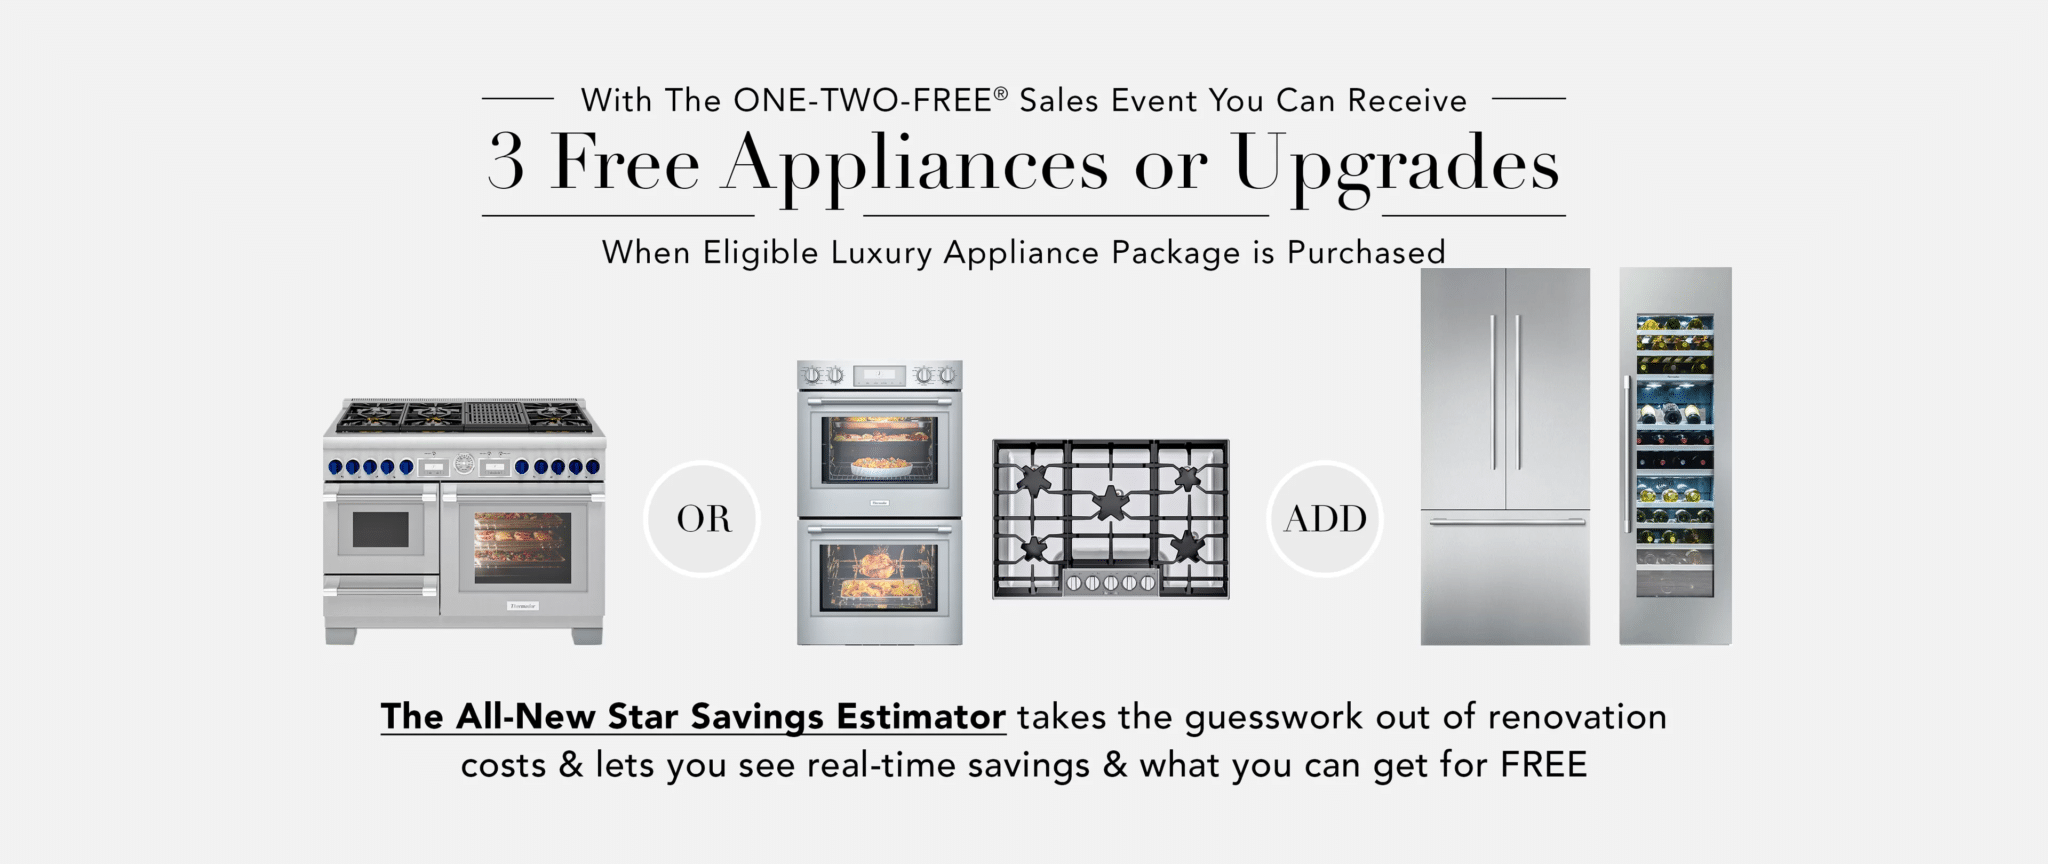 16269719_thermador-kitchen-bundle-package-3-free-appliances-or-upgrades_4000x1688